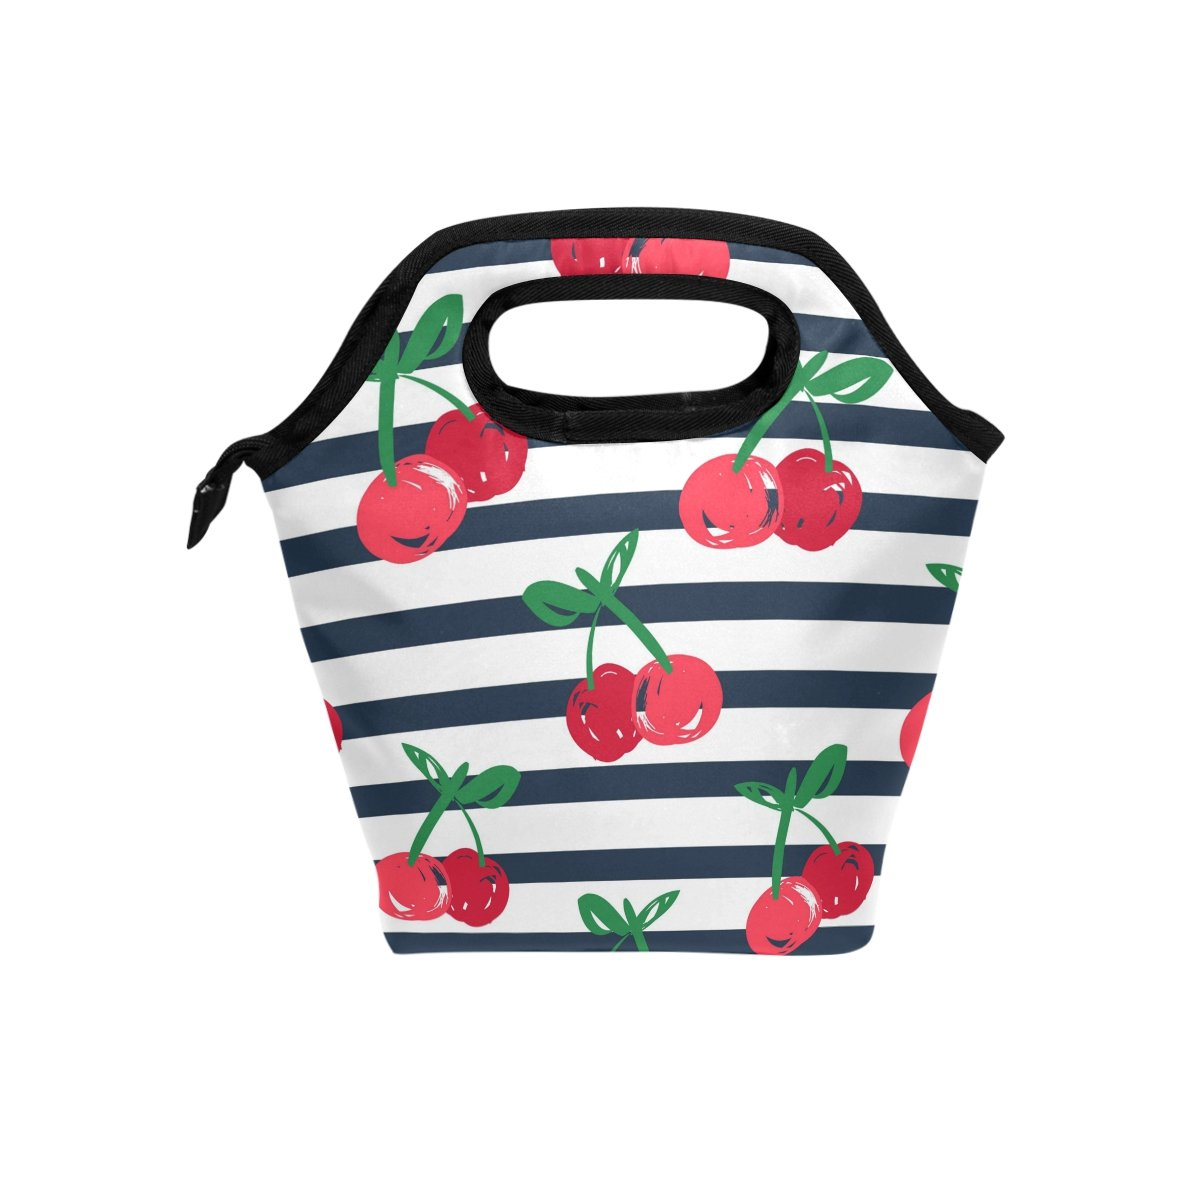 Bettken Lunch Bag Cherry Stripe Pattern Insulated Reusable Lunch Box Portable Lunch Tote Bag Meal Bag Ice Pack for Kids Boys Girls Adult Men Women 輸 入 品